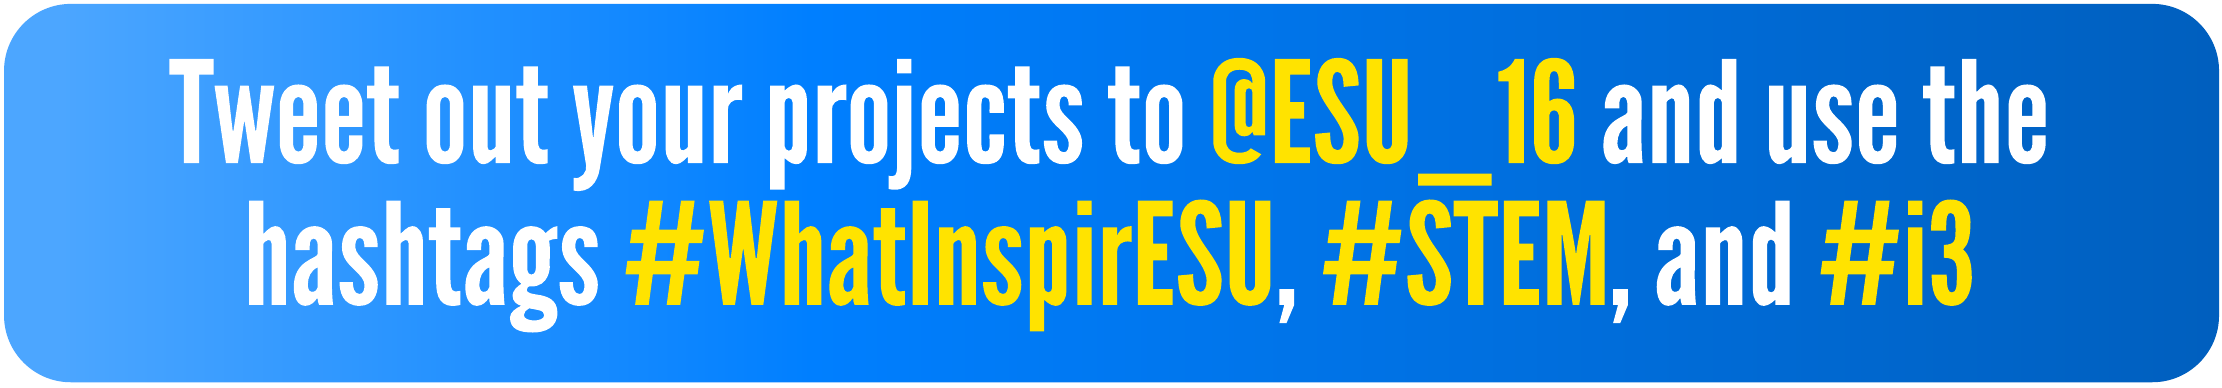 Tweet out your projects to @ESU_16 and use the hashtags #WhatInspirESU, #STEM, and #i3